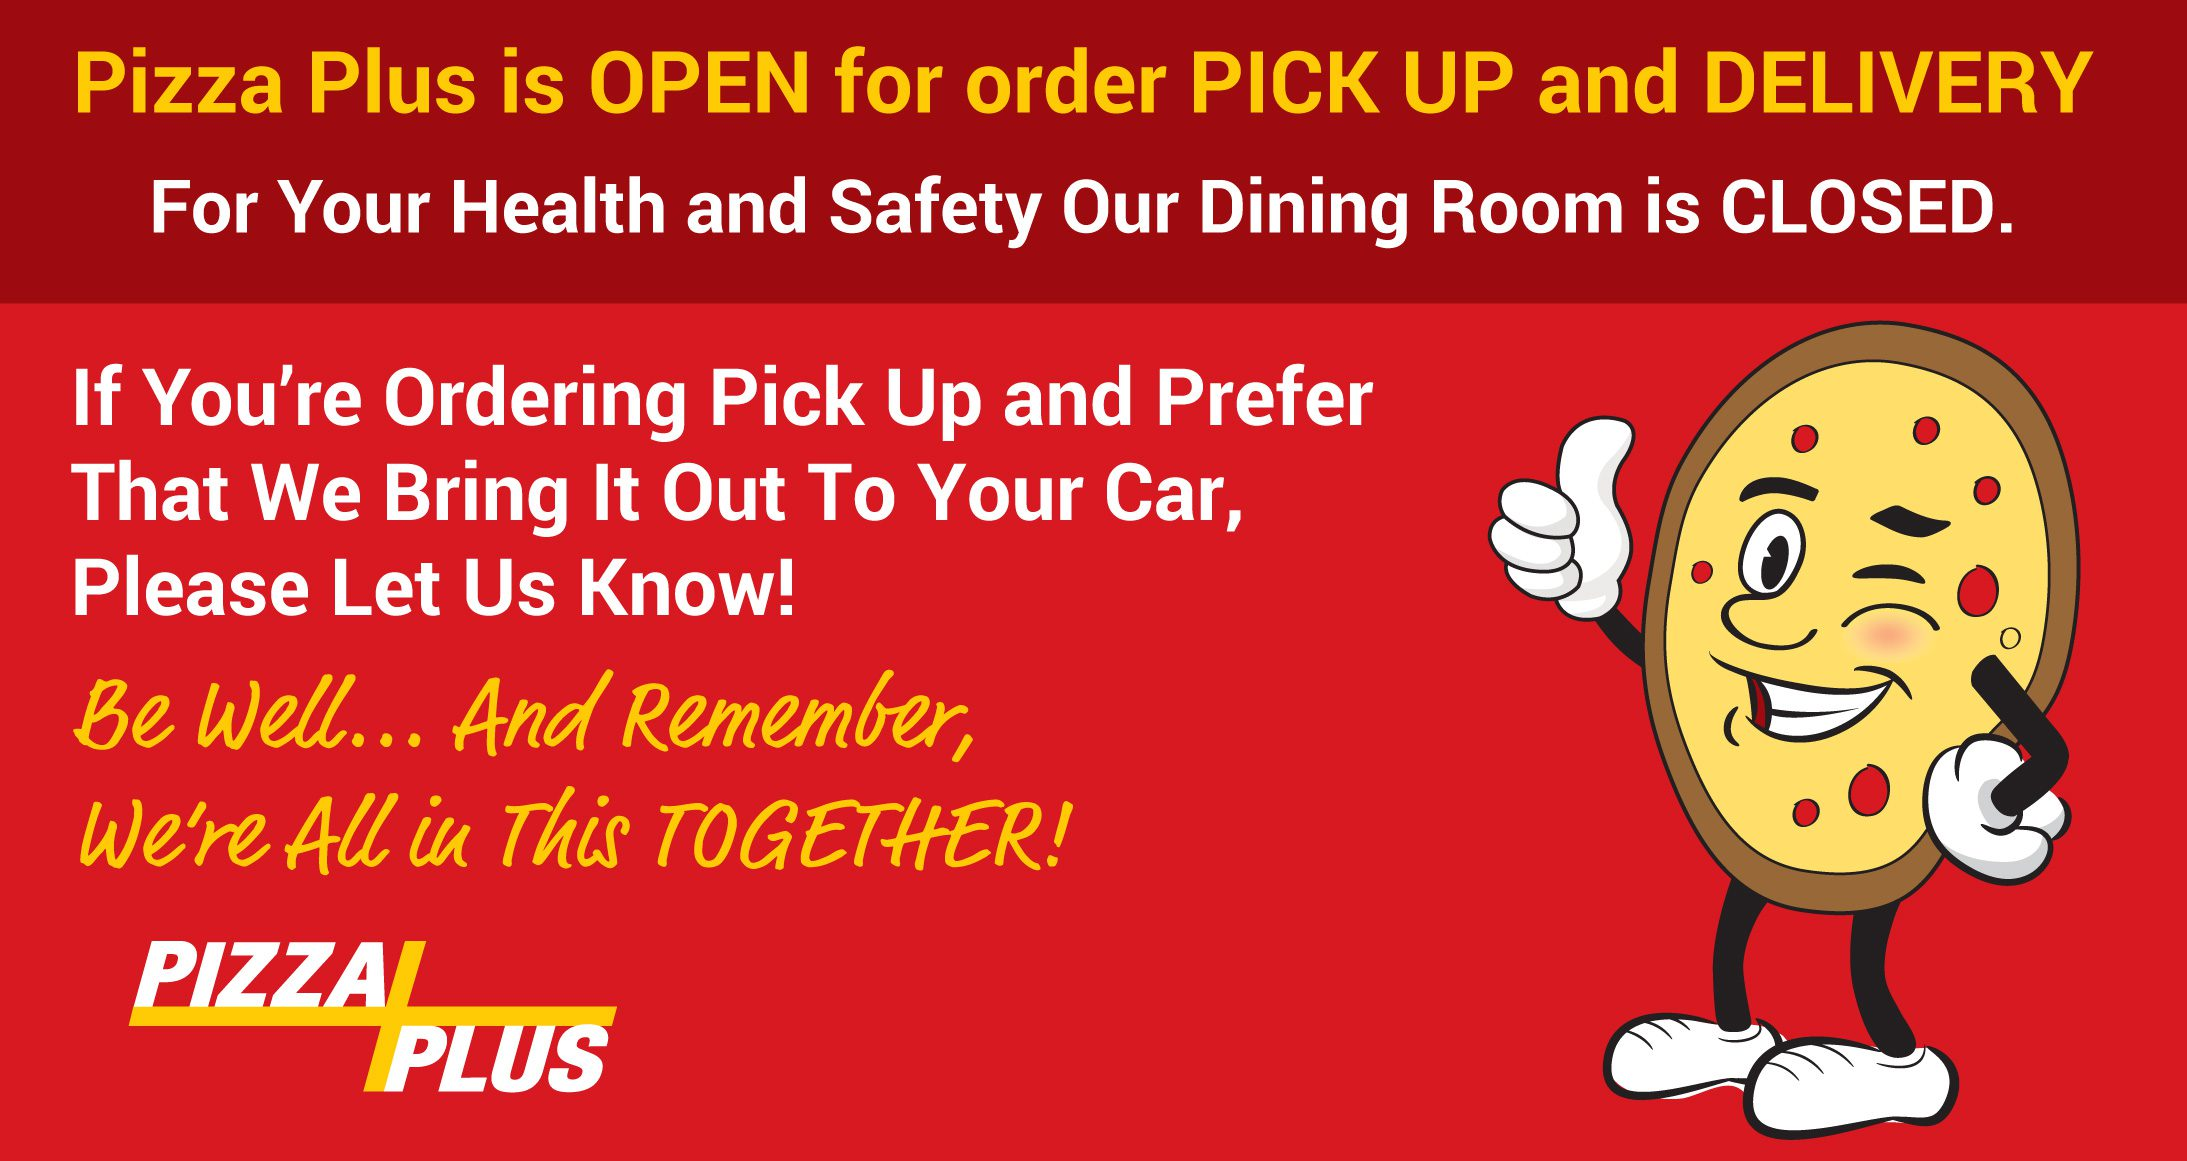 Pizza Plus dining room is closed, but we are open for delivery and pickup!